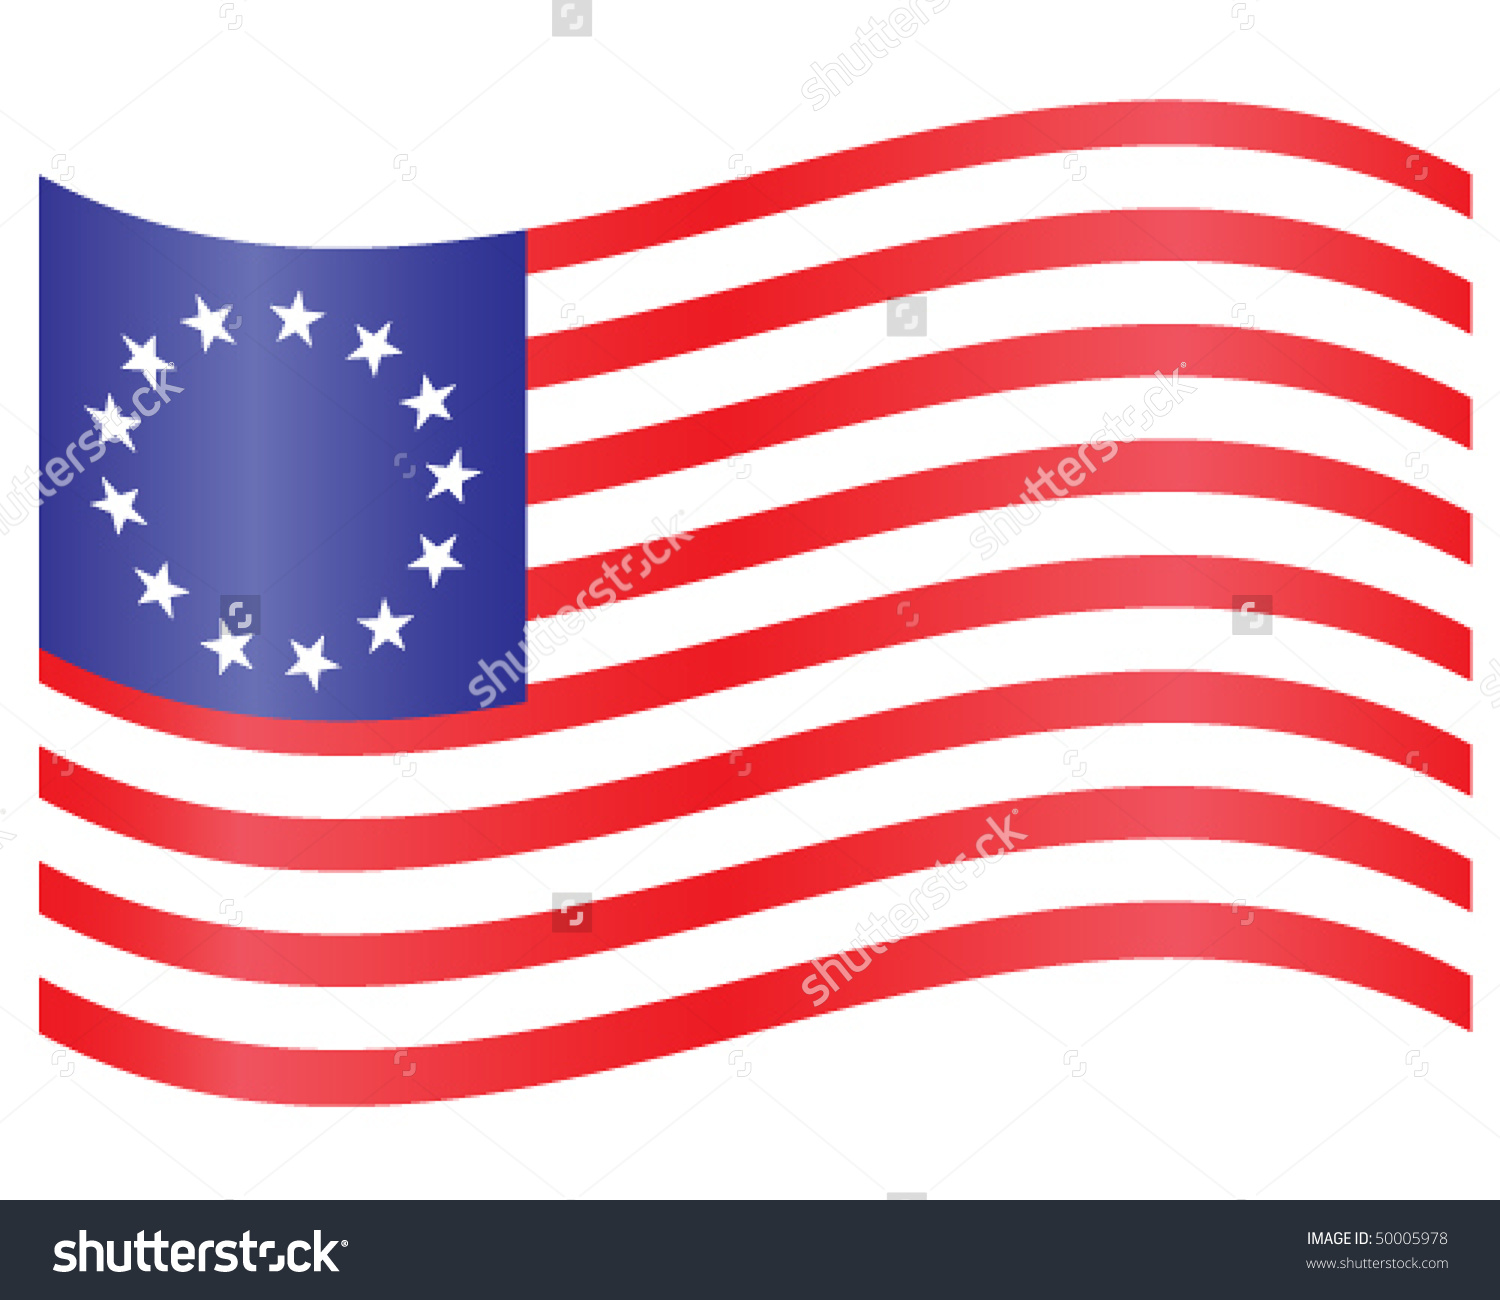 Colony us flag clipart svg freeuse download Thirteen colonies flag clipart - ClipartFest svg freeuse download